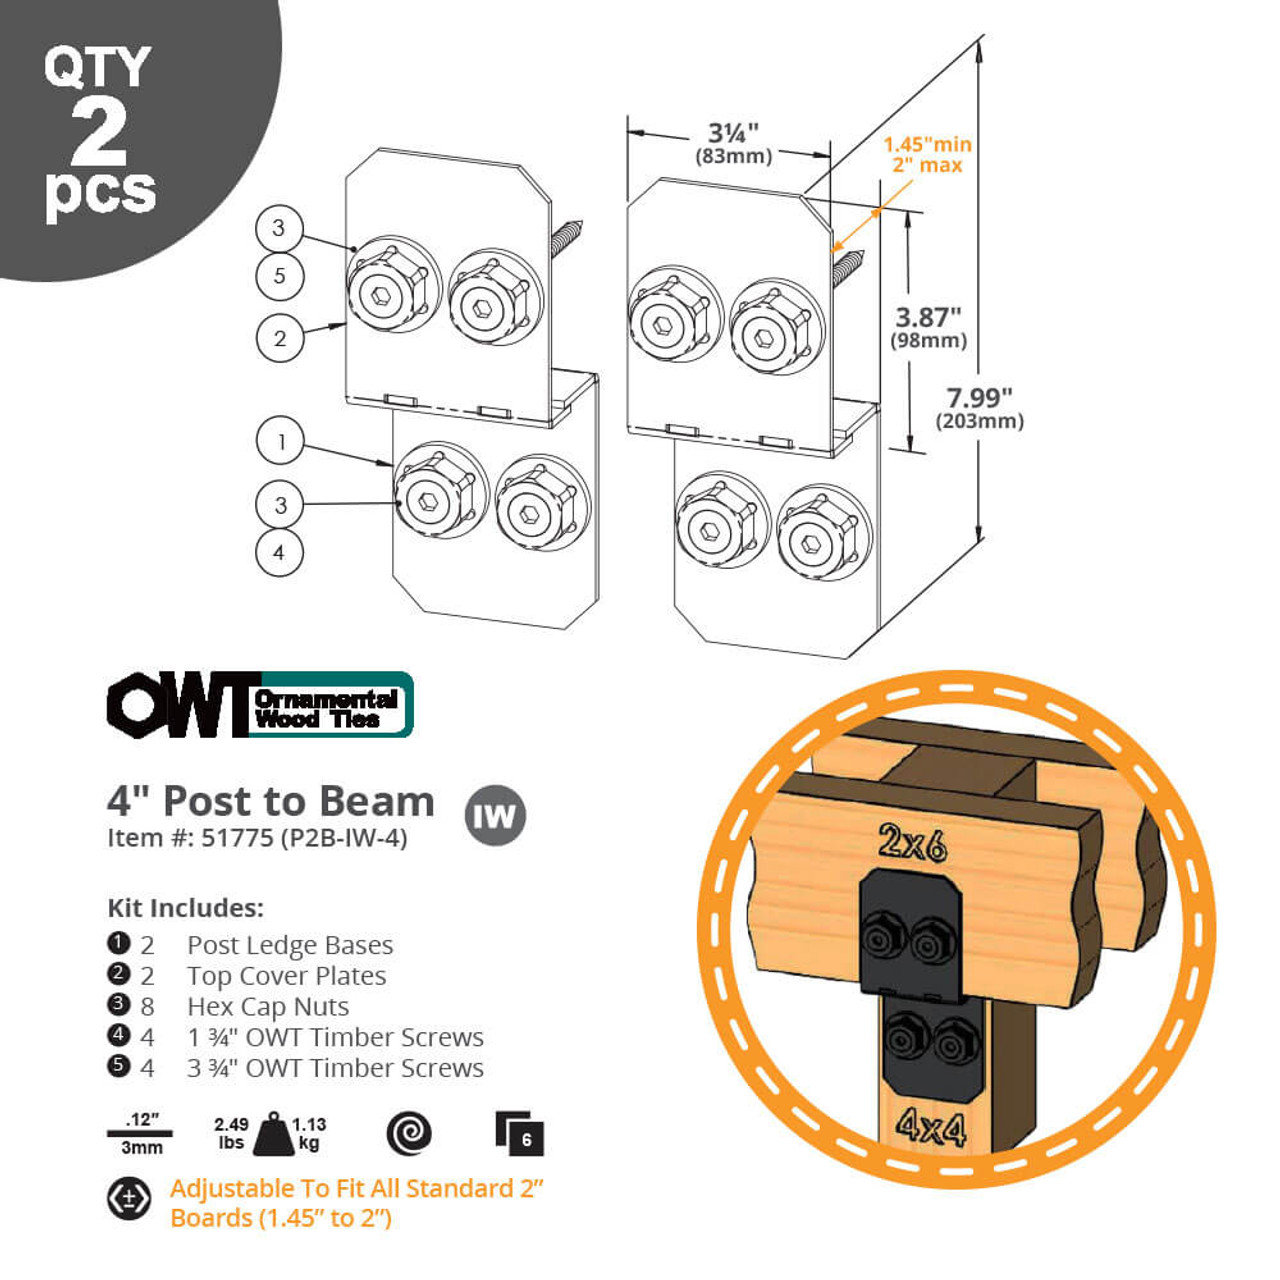 """4"""" Post to Beam Connectors from OZCO Ornamental Wood Ties (OWT) Dimension Drawing"""